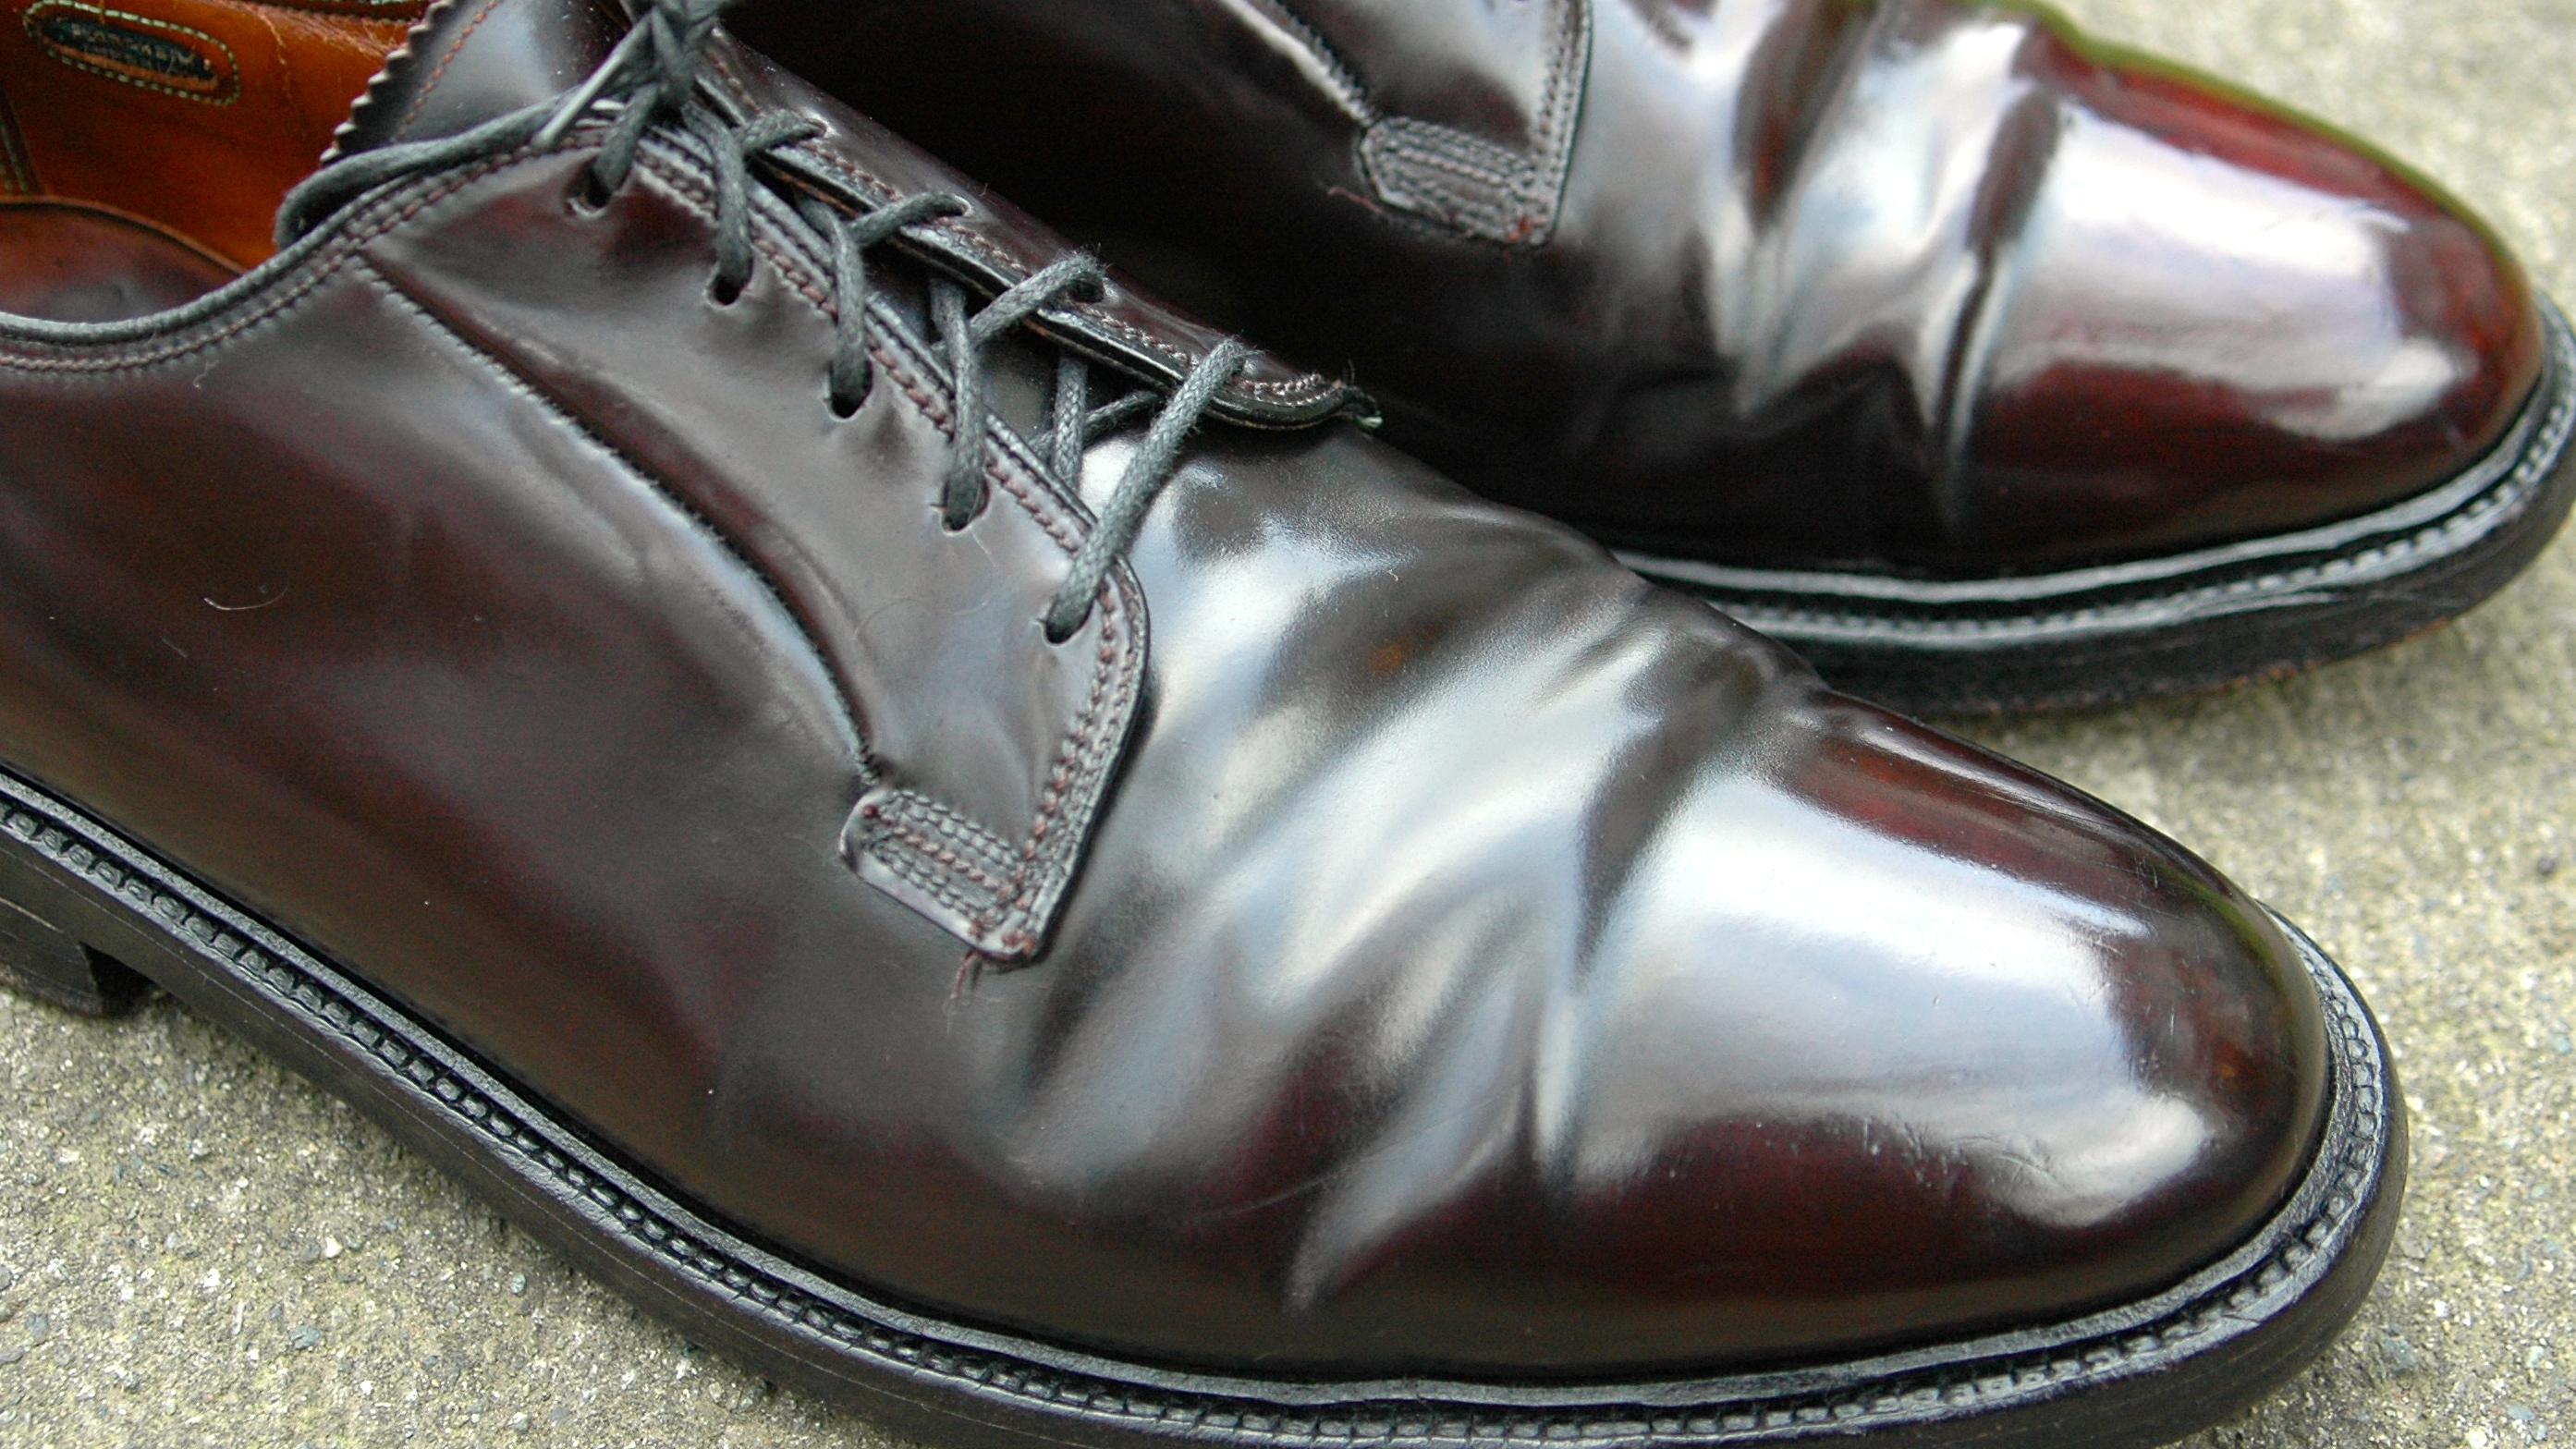 Can Shoe Leather Costs Disrupt The Tax System